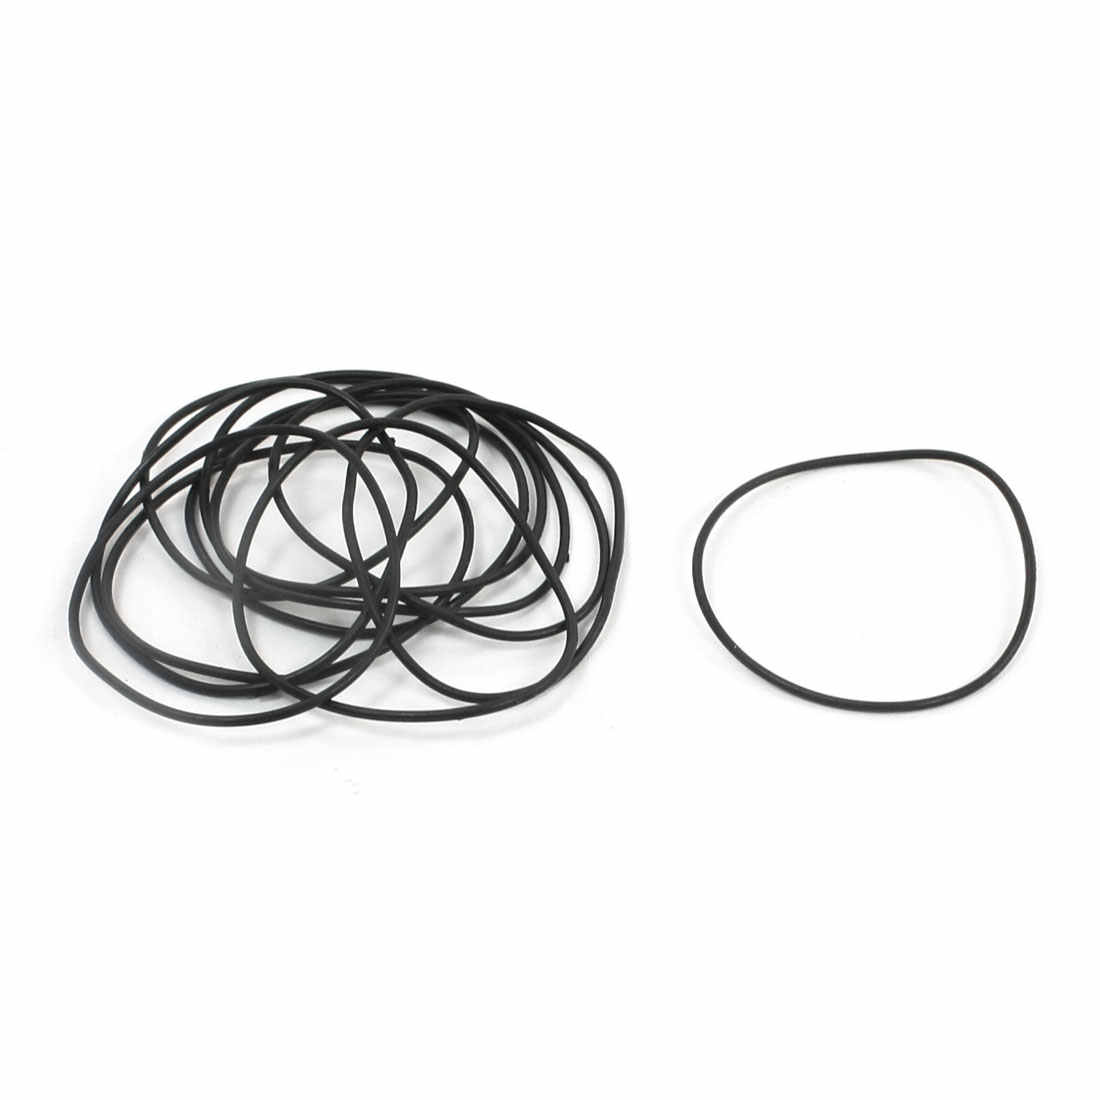 Uxcell 10Pcs/lot 1mm Cross Section Industrial Rubber O Rings Seals Id 31mm 32mm 33mm 36mm 38mm 41mm 44mm